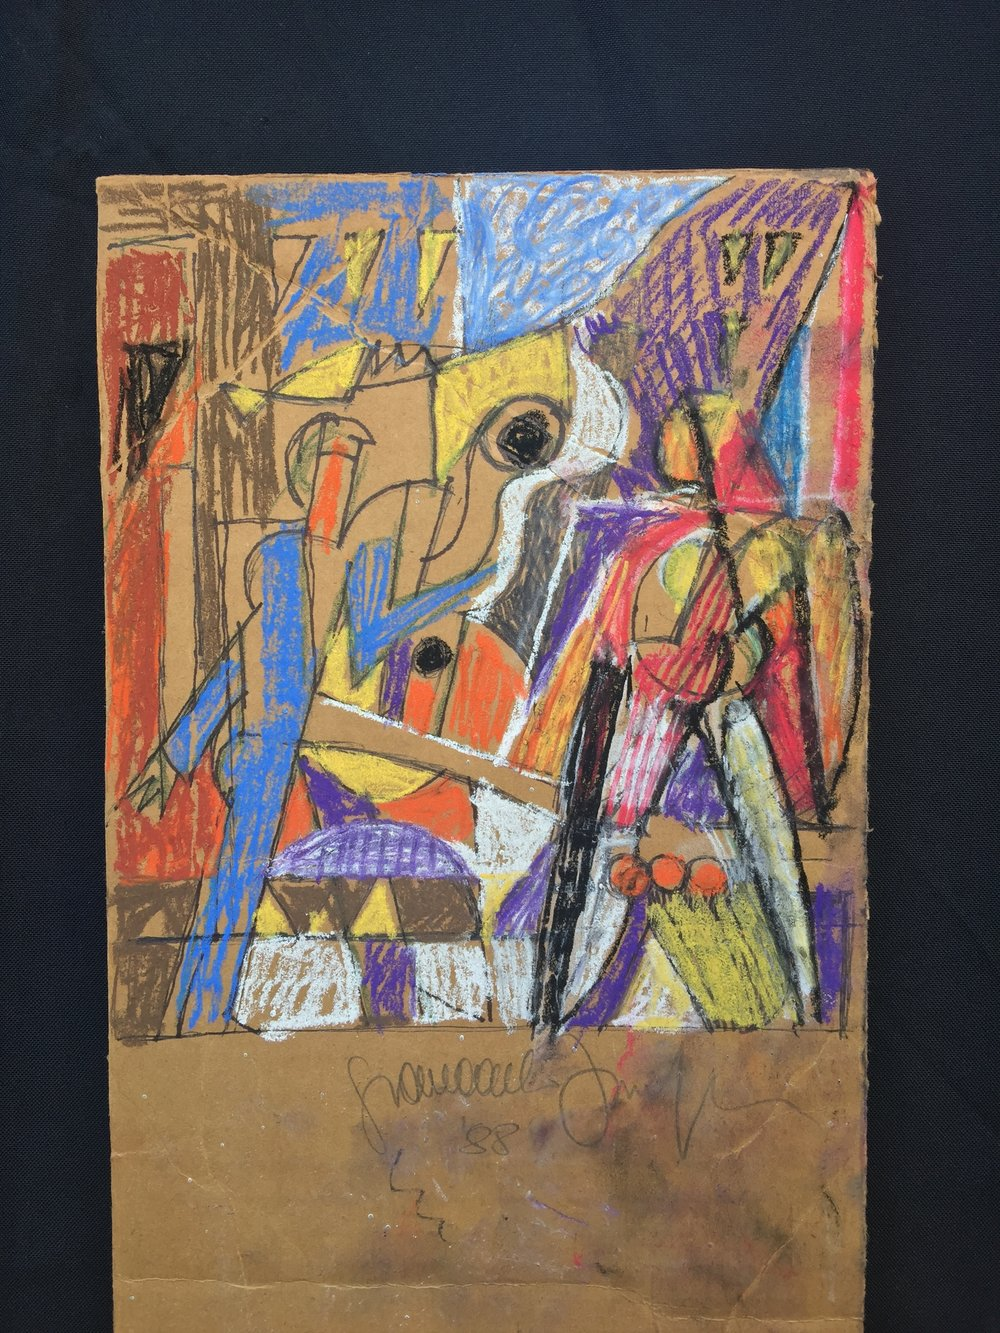 Sketch, 1988 (colored 2017), Pastel on cardboard, 6 x 4""